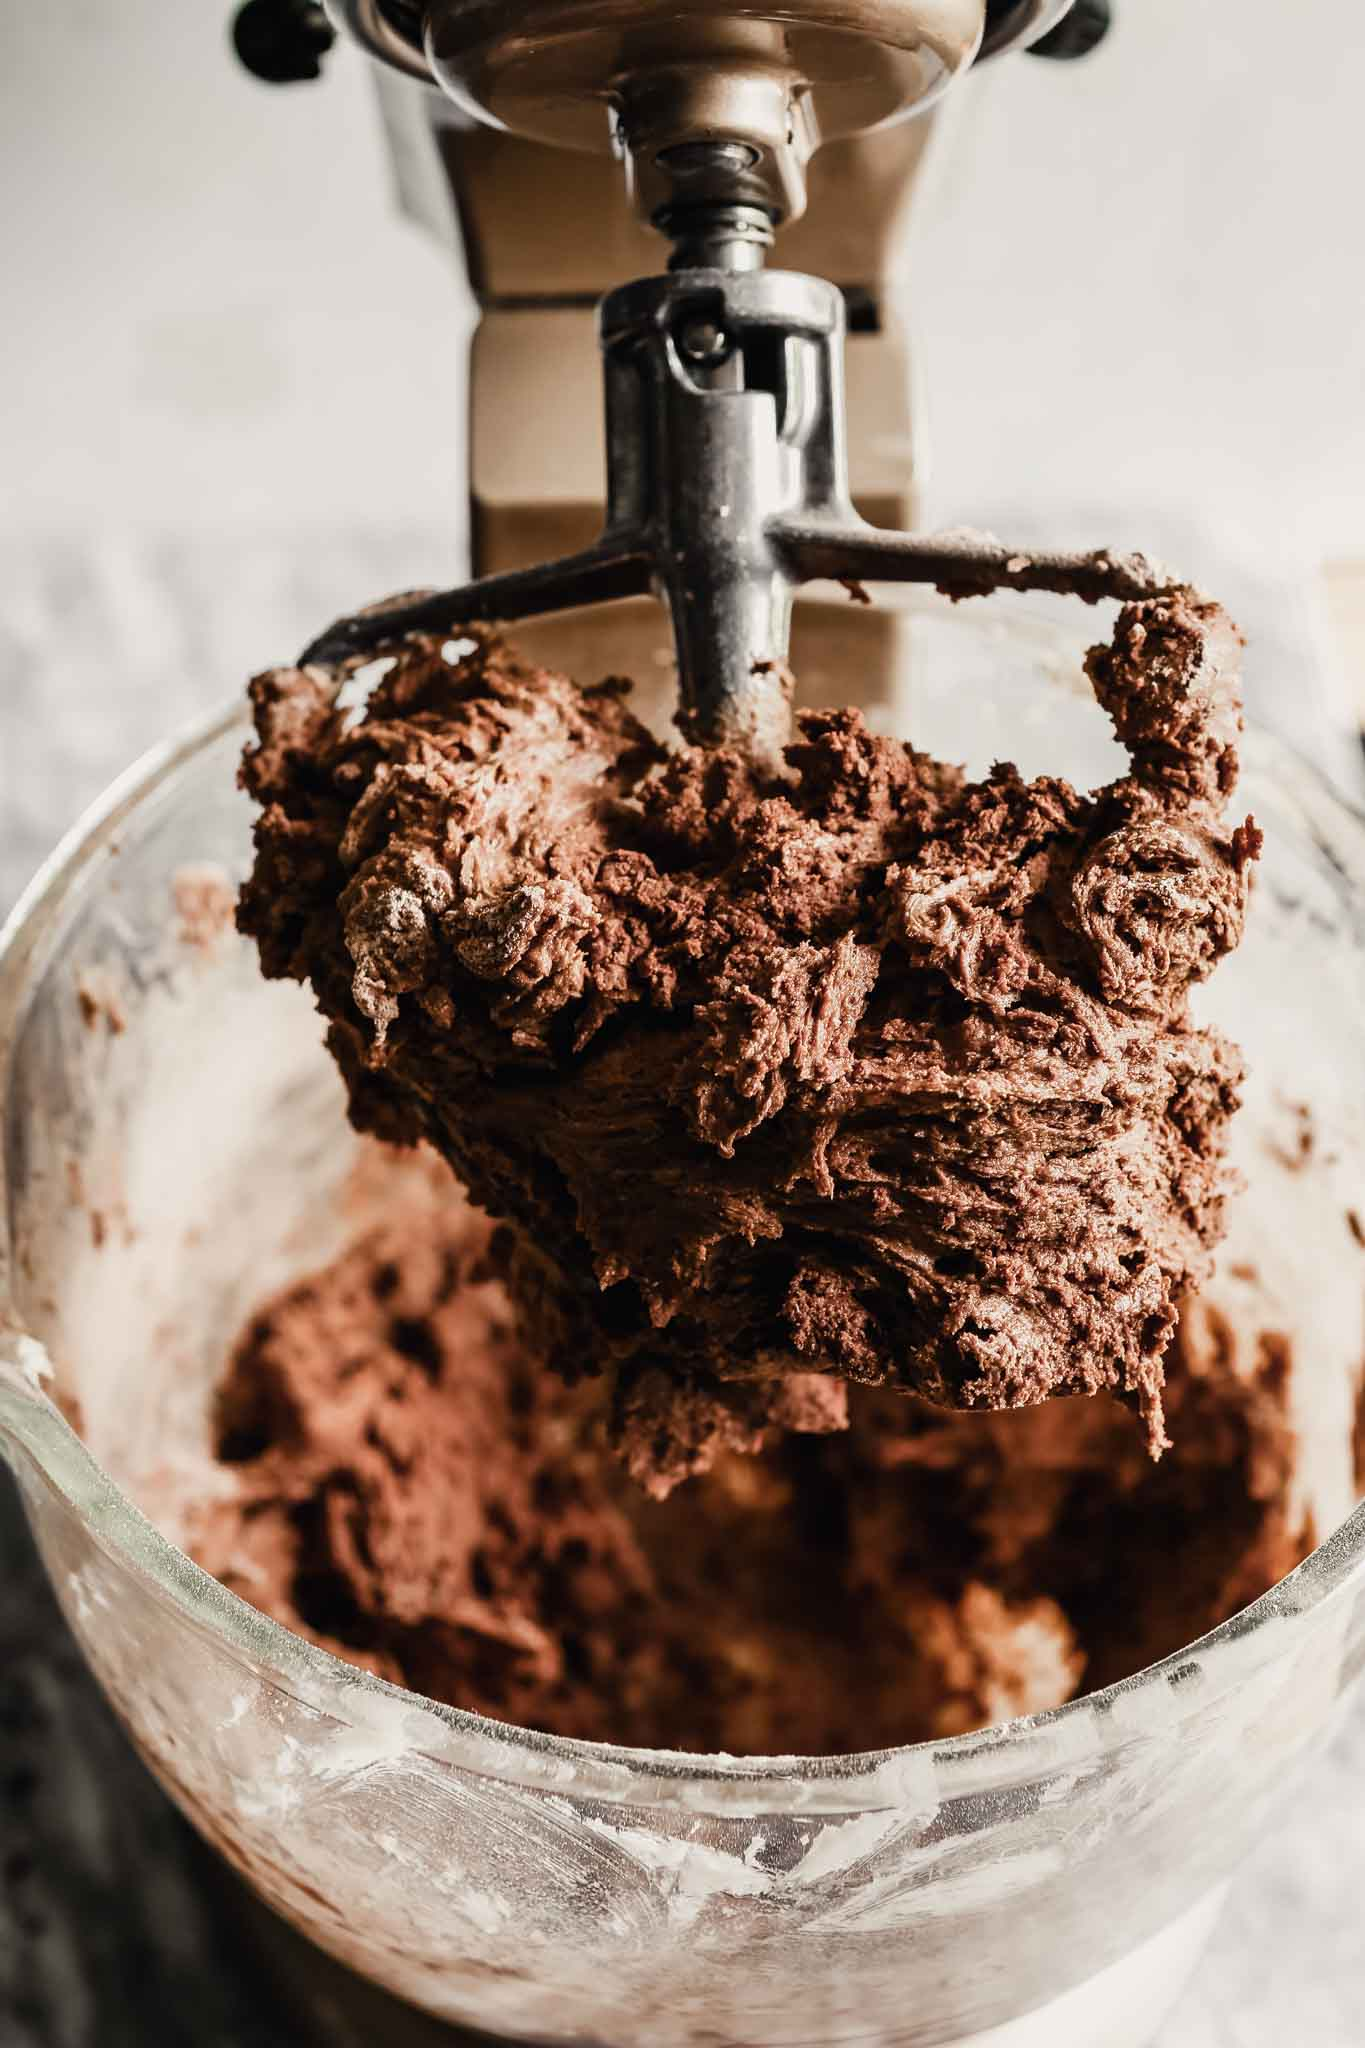 Photograph of chocolate cookie dough in a stand mixer